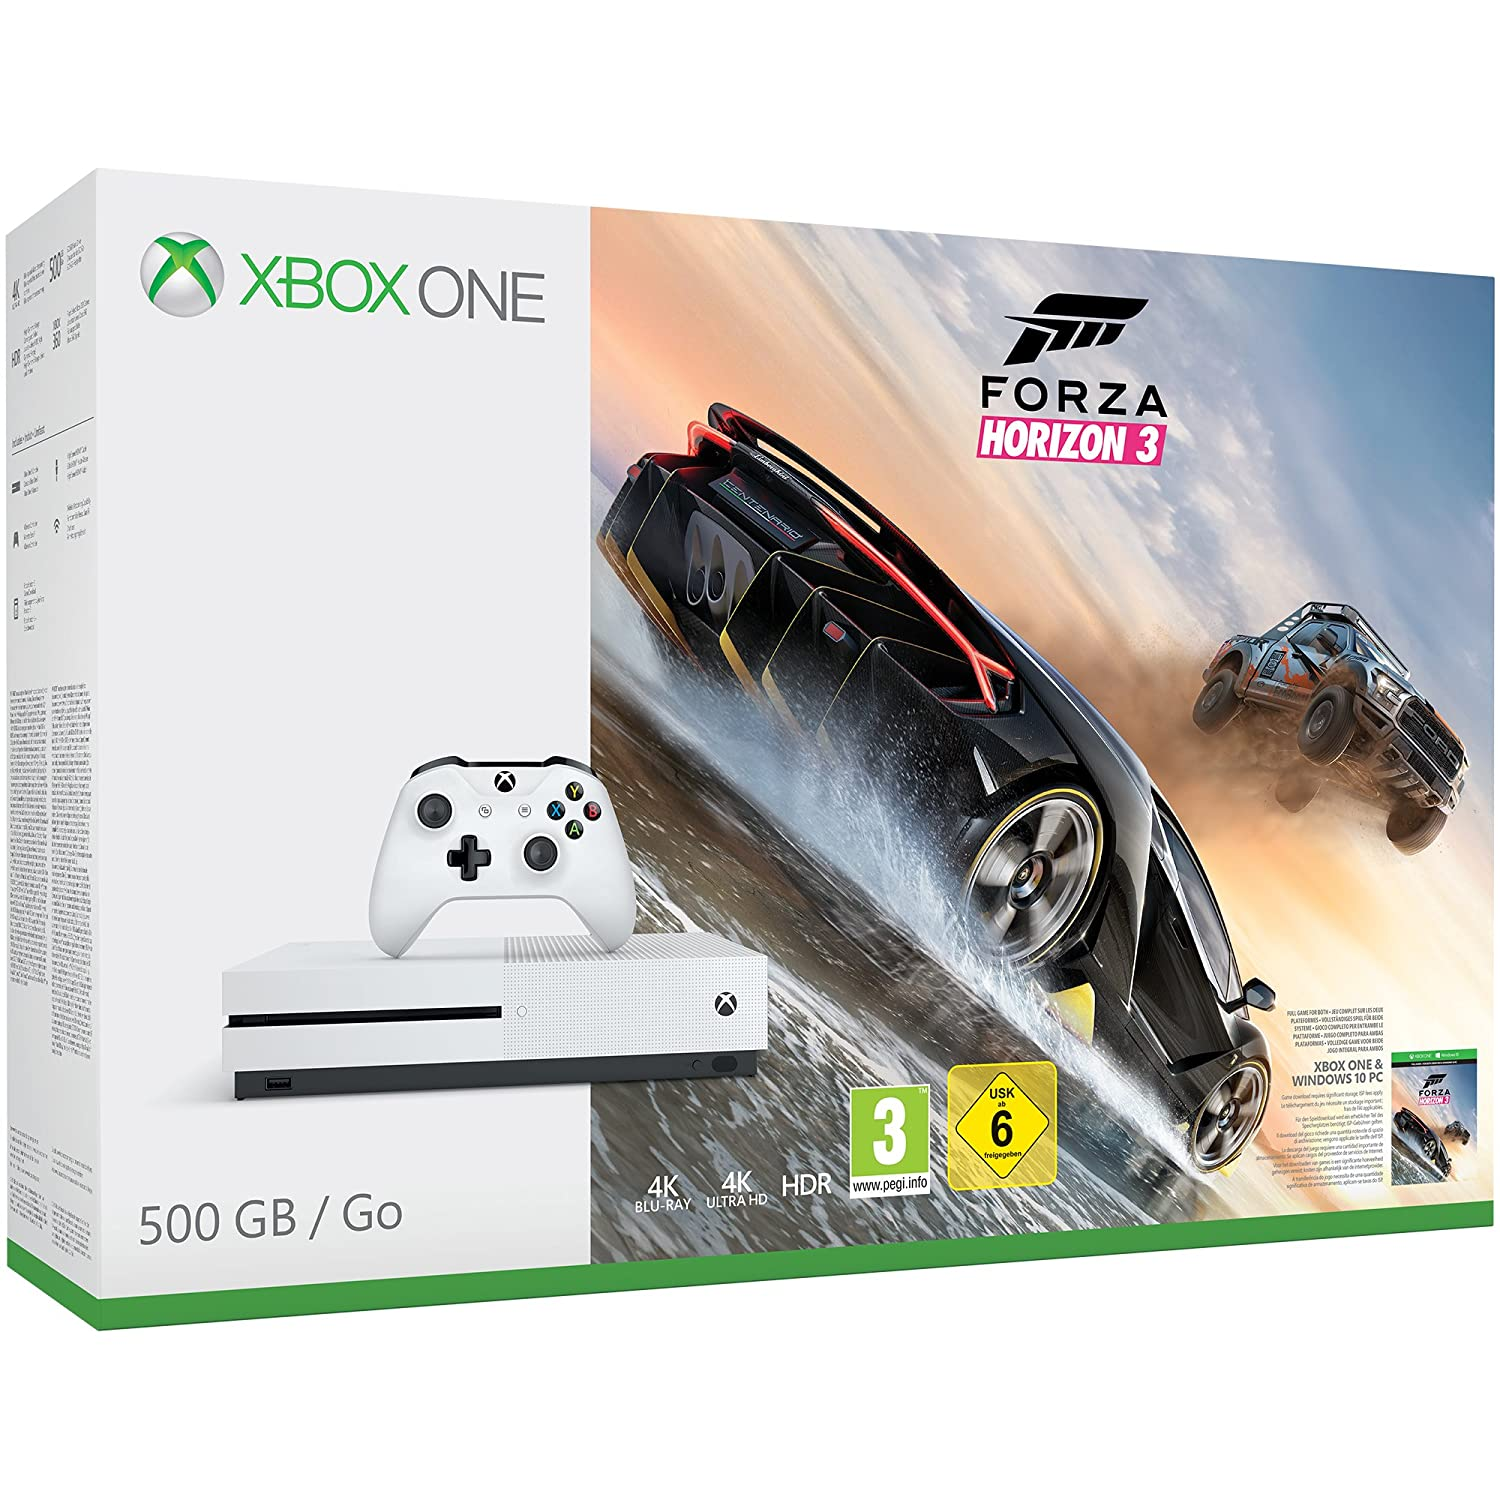 XBox One S Console - Forza Horizon 3 Bundle